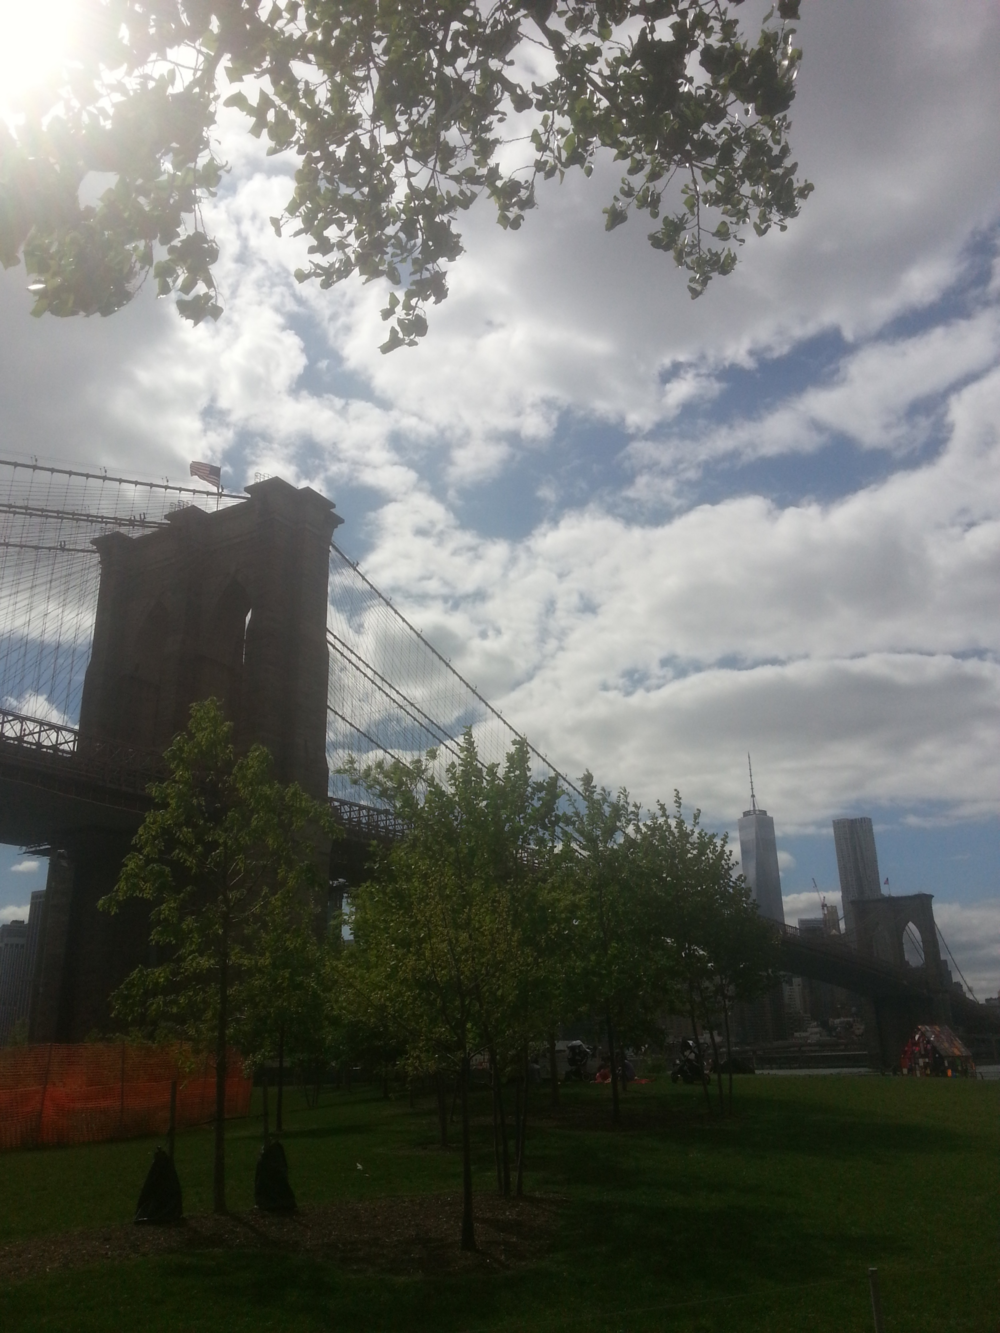 Yeah, the same Brooklyn Bridge you've seen before...